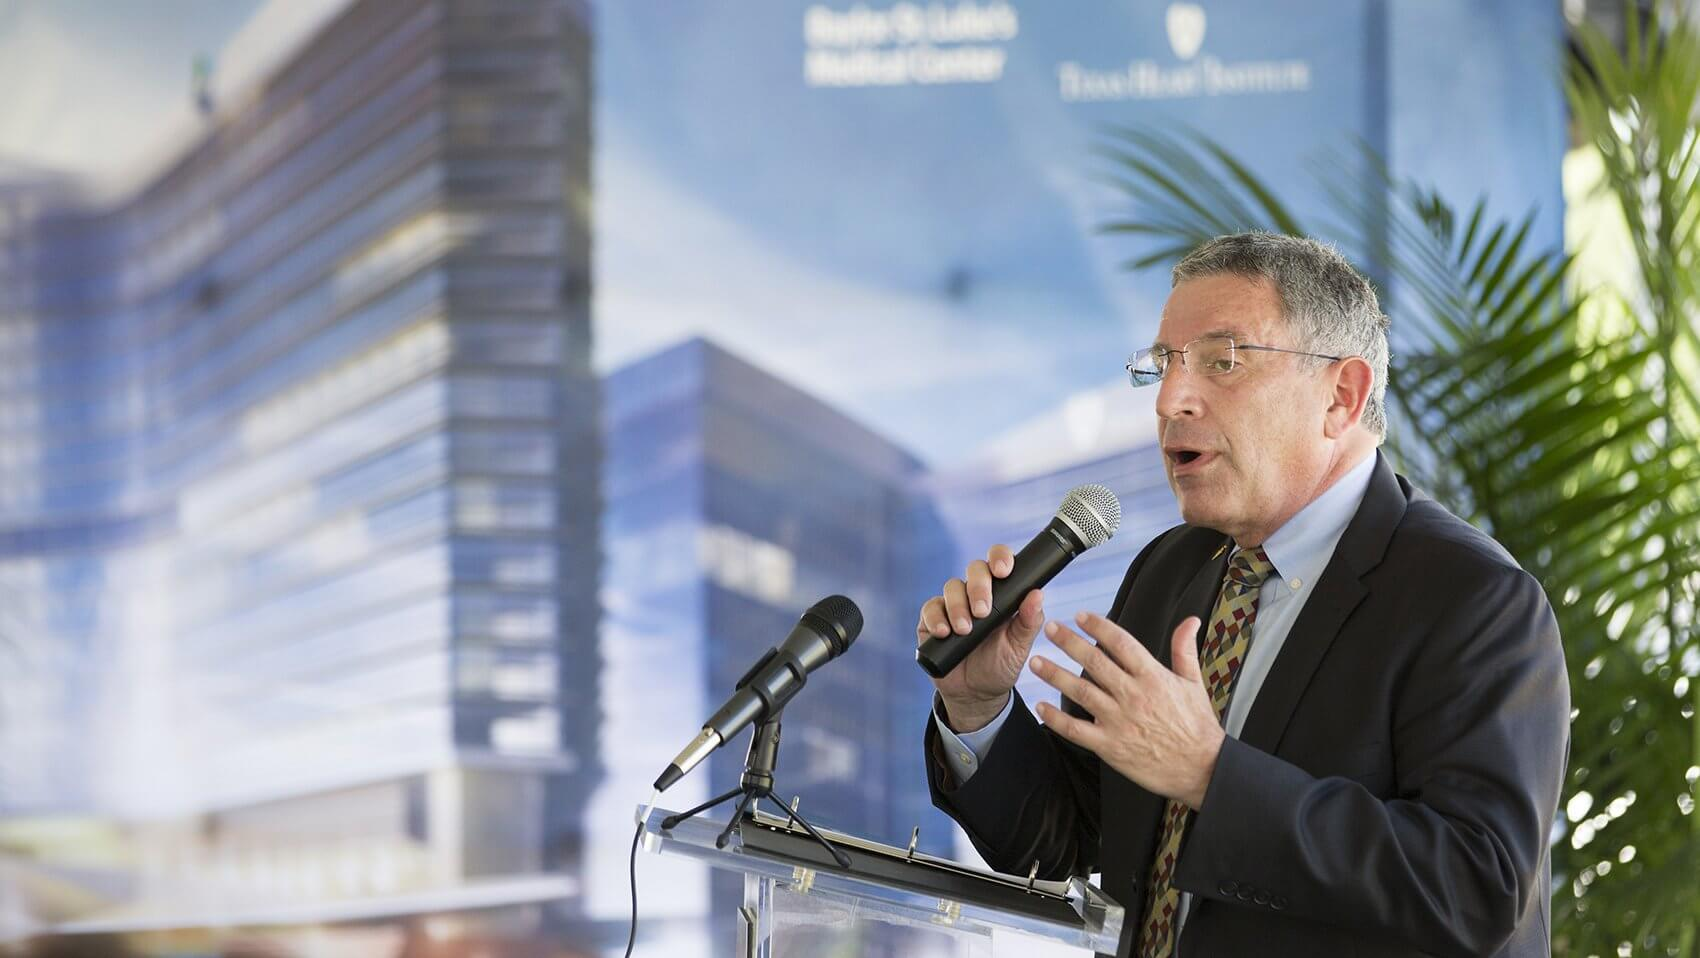 Paul Klotman, M.D., president and chief executive officer of Baylor College of Medicine